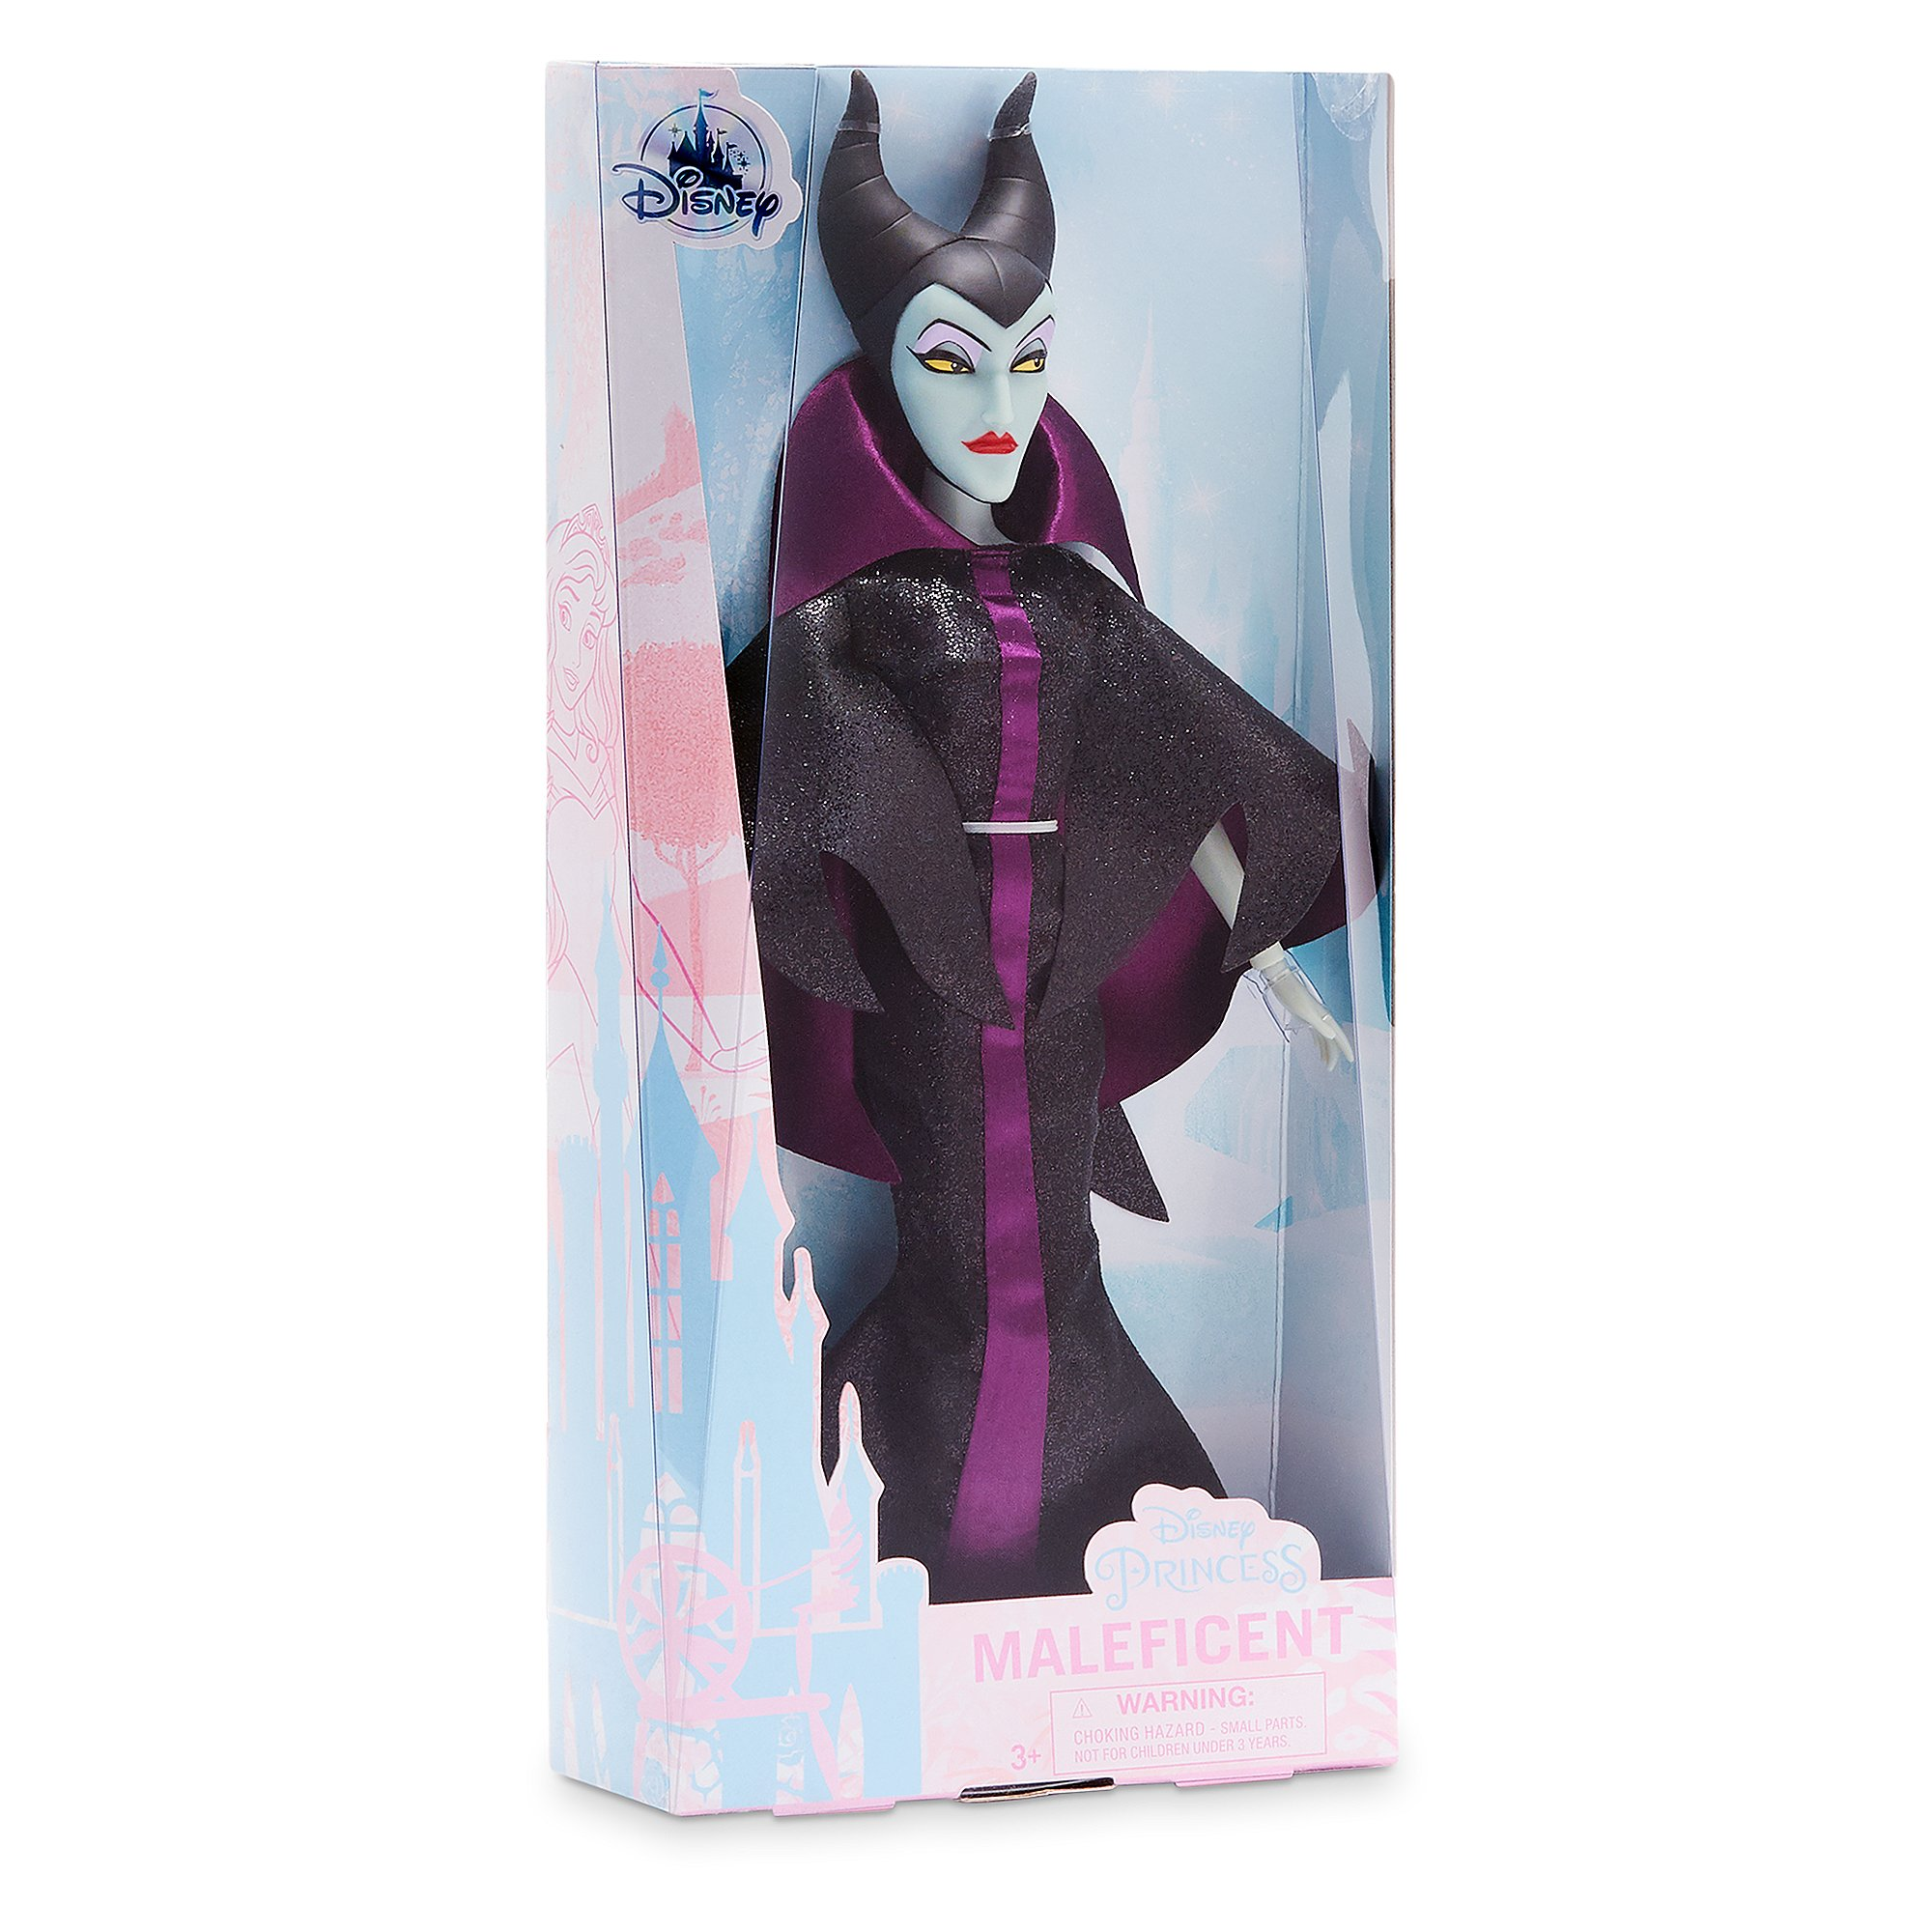 Disney Princess Sleeping Beauty Maleficent Doll Disney Store